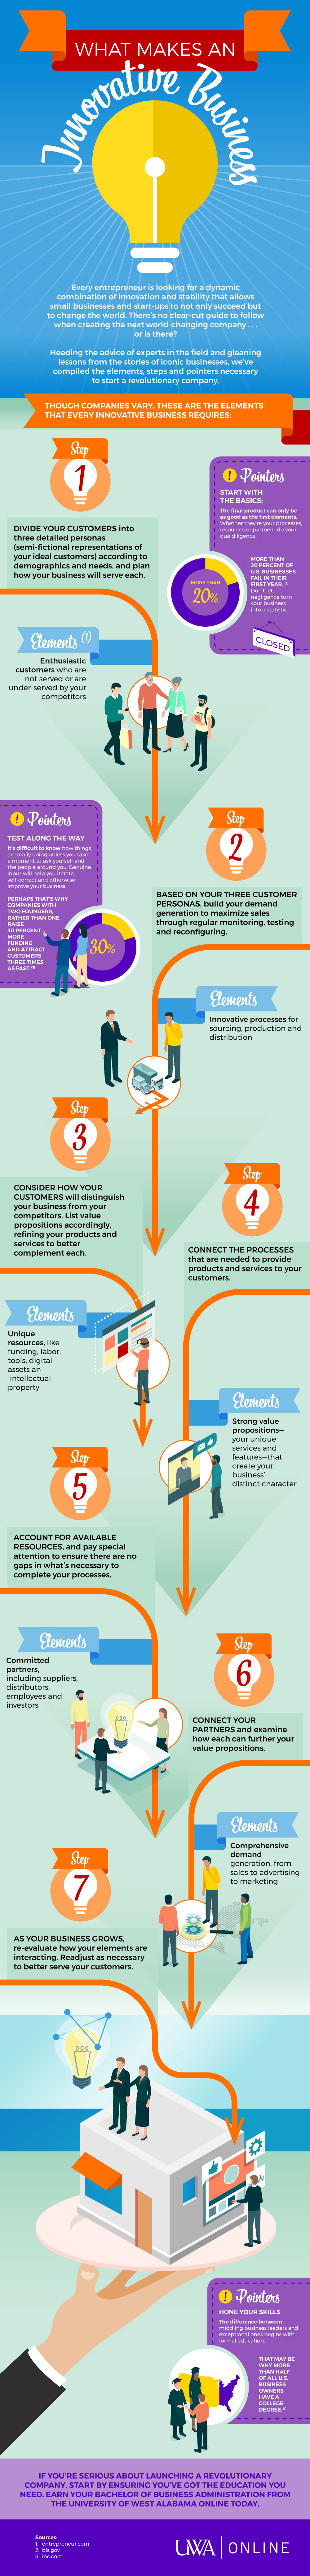 Illustrated infographic examining the components of an innovative business.